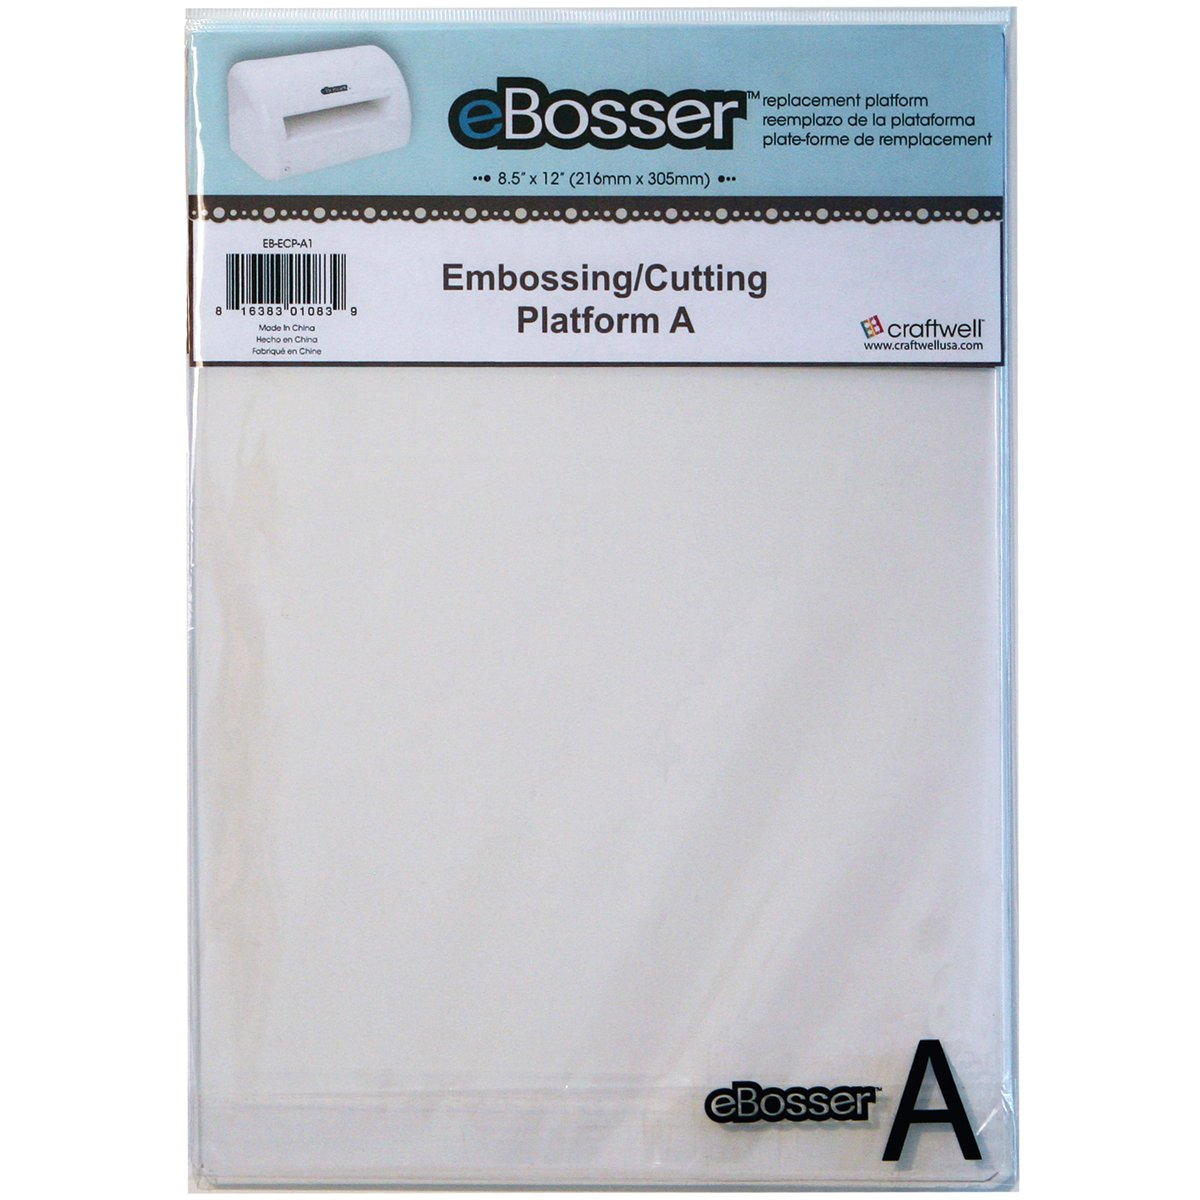 Craftwell eBosser Embossing/Cutting Platform A 8.5